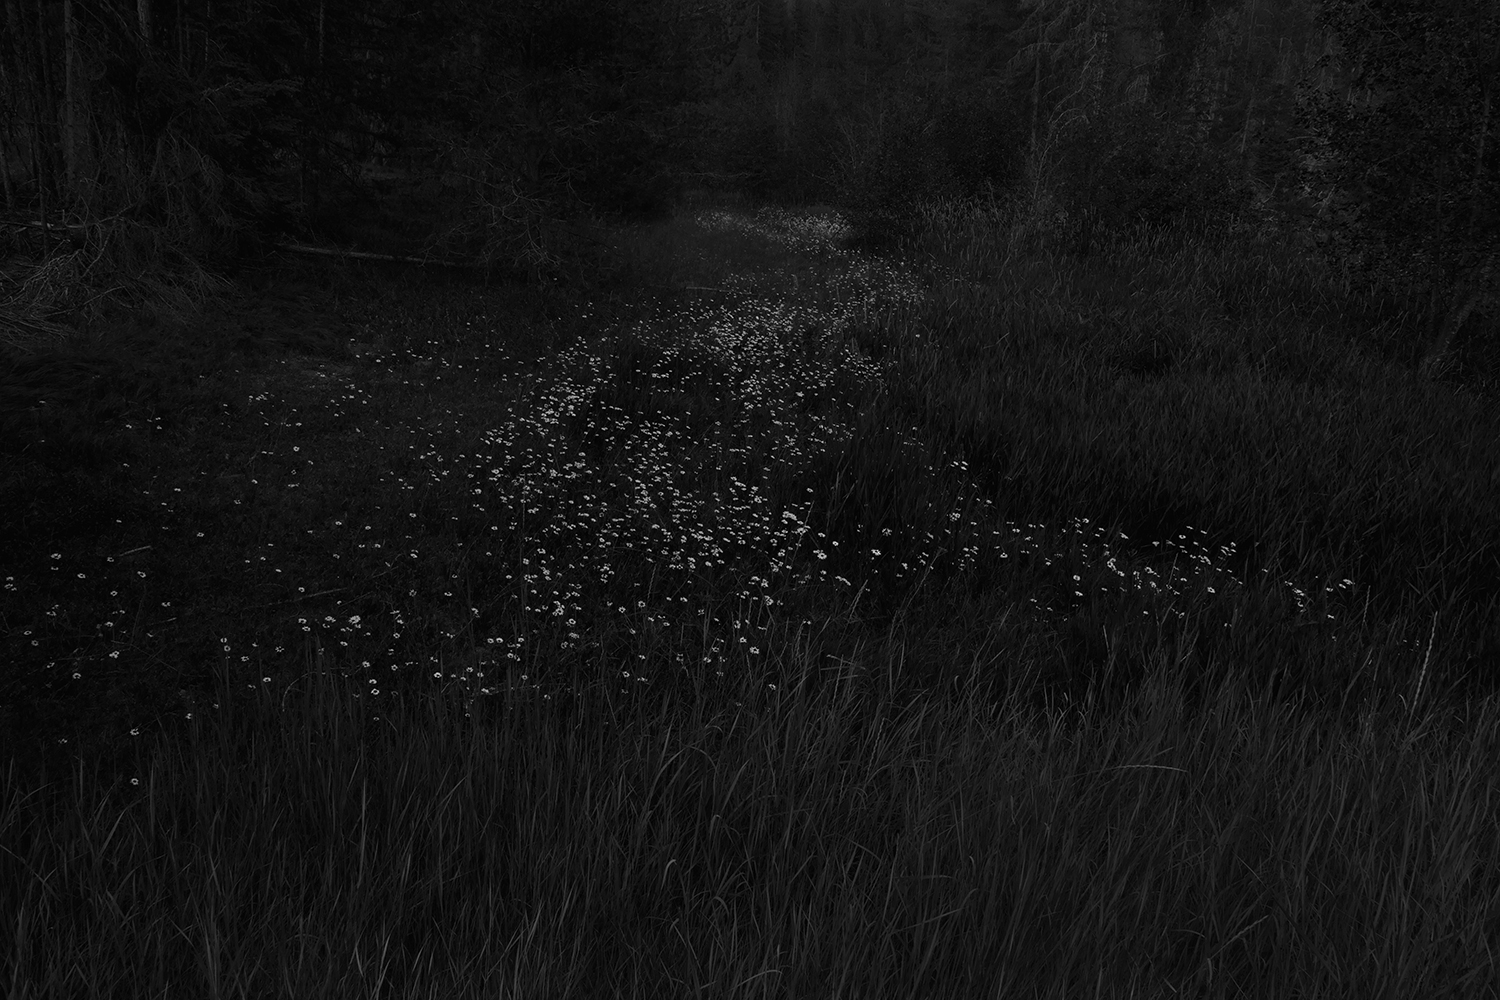 Trail, from the series The Forest